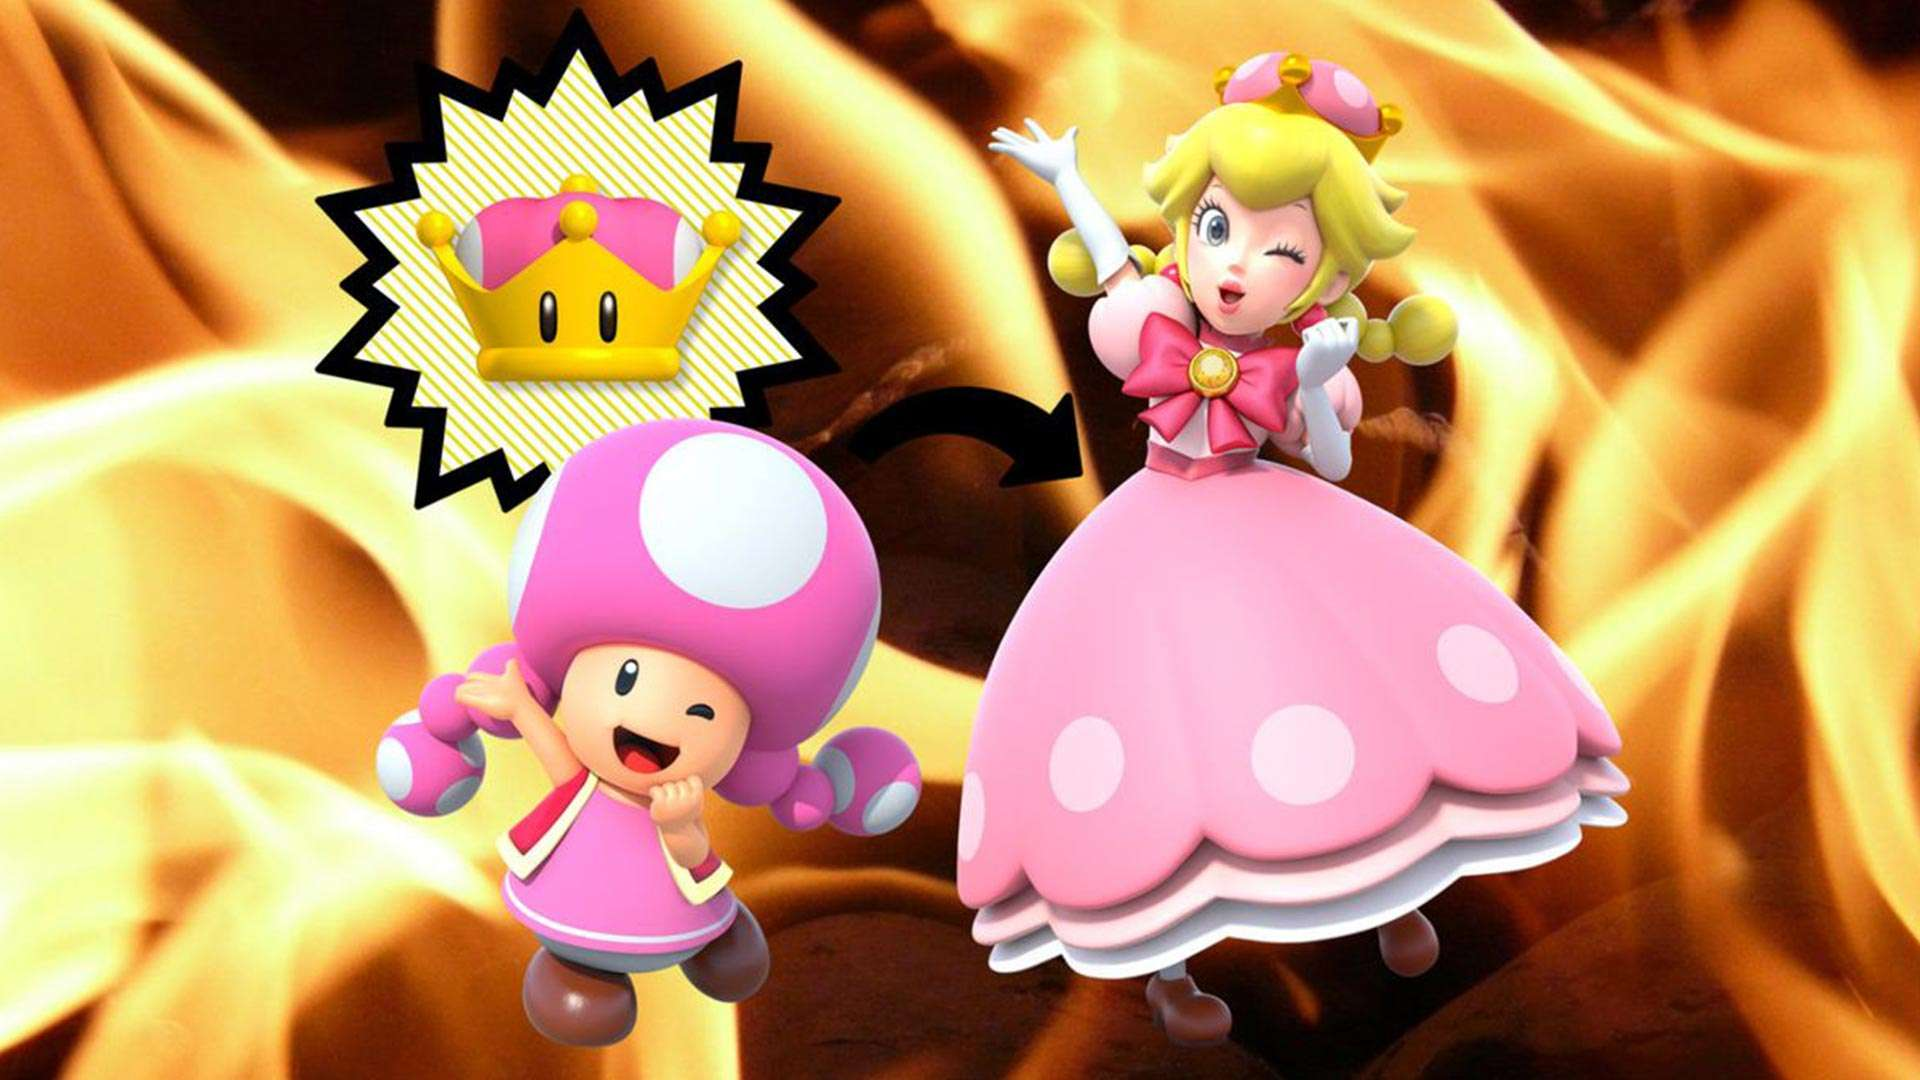 New Super Mario Bros U Deluxe Gives Toadette a wallpaper 161 1920x1080